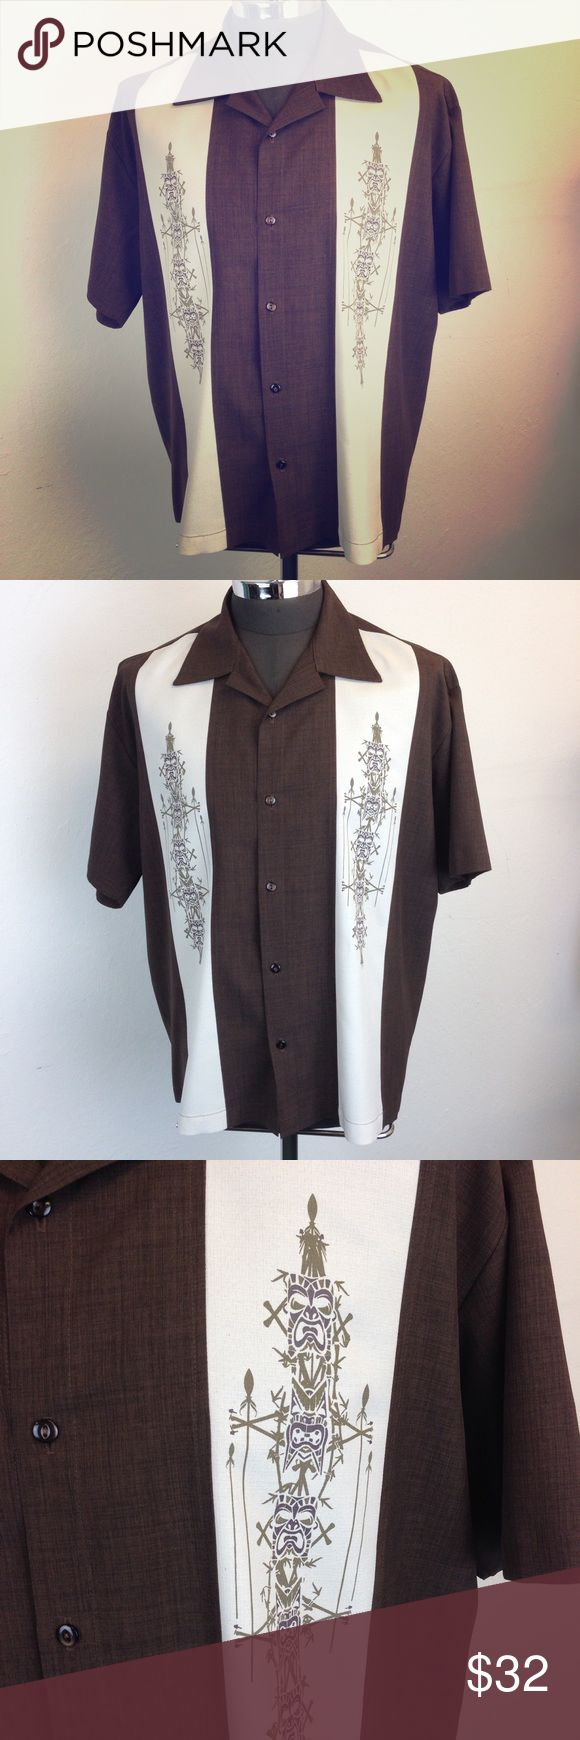 "Steady Last Call Tiki Brown Retro Bowling Shirt Men's cool rockabilly bowling shirt  Brown with tiki idol panels Made in the U.S.A.   Maker: Steady Last Call Fabric:  100% Polyester Listed Size: XL Measurements: Shoulder seam to shoulder seam : 22""  Armpit to armpit:  26"" Sleeve length from Shoulder Seam: 10"" Bottom of the Collar to Hem: 29.5""   Condition:  Very good to excellent  pre-owned worn used but not abused  condition and coming from a non-smoking home. C21 Steady Last Call Shirts…"